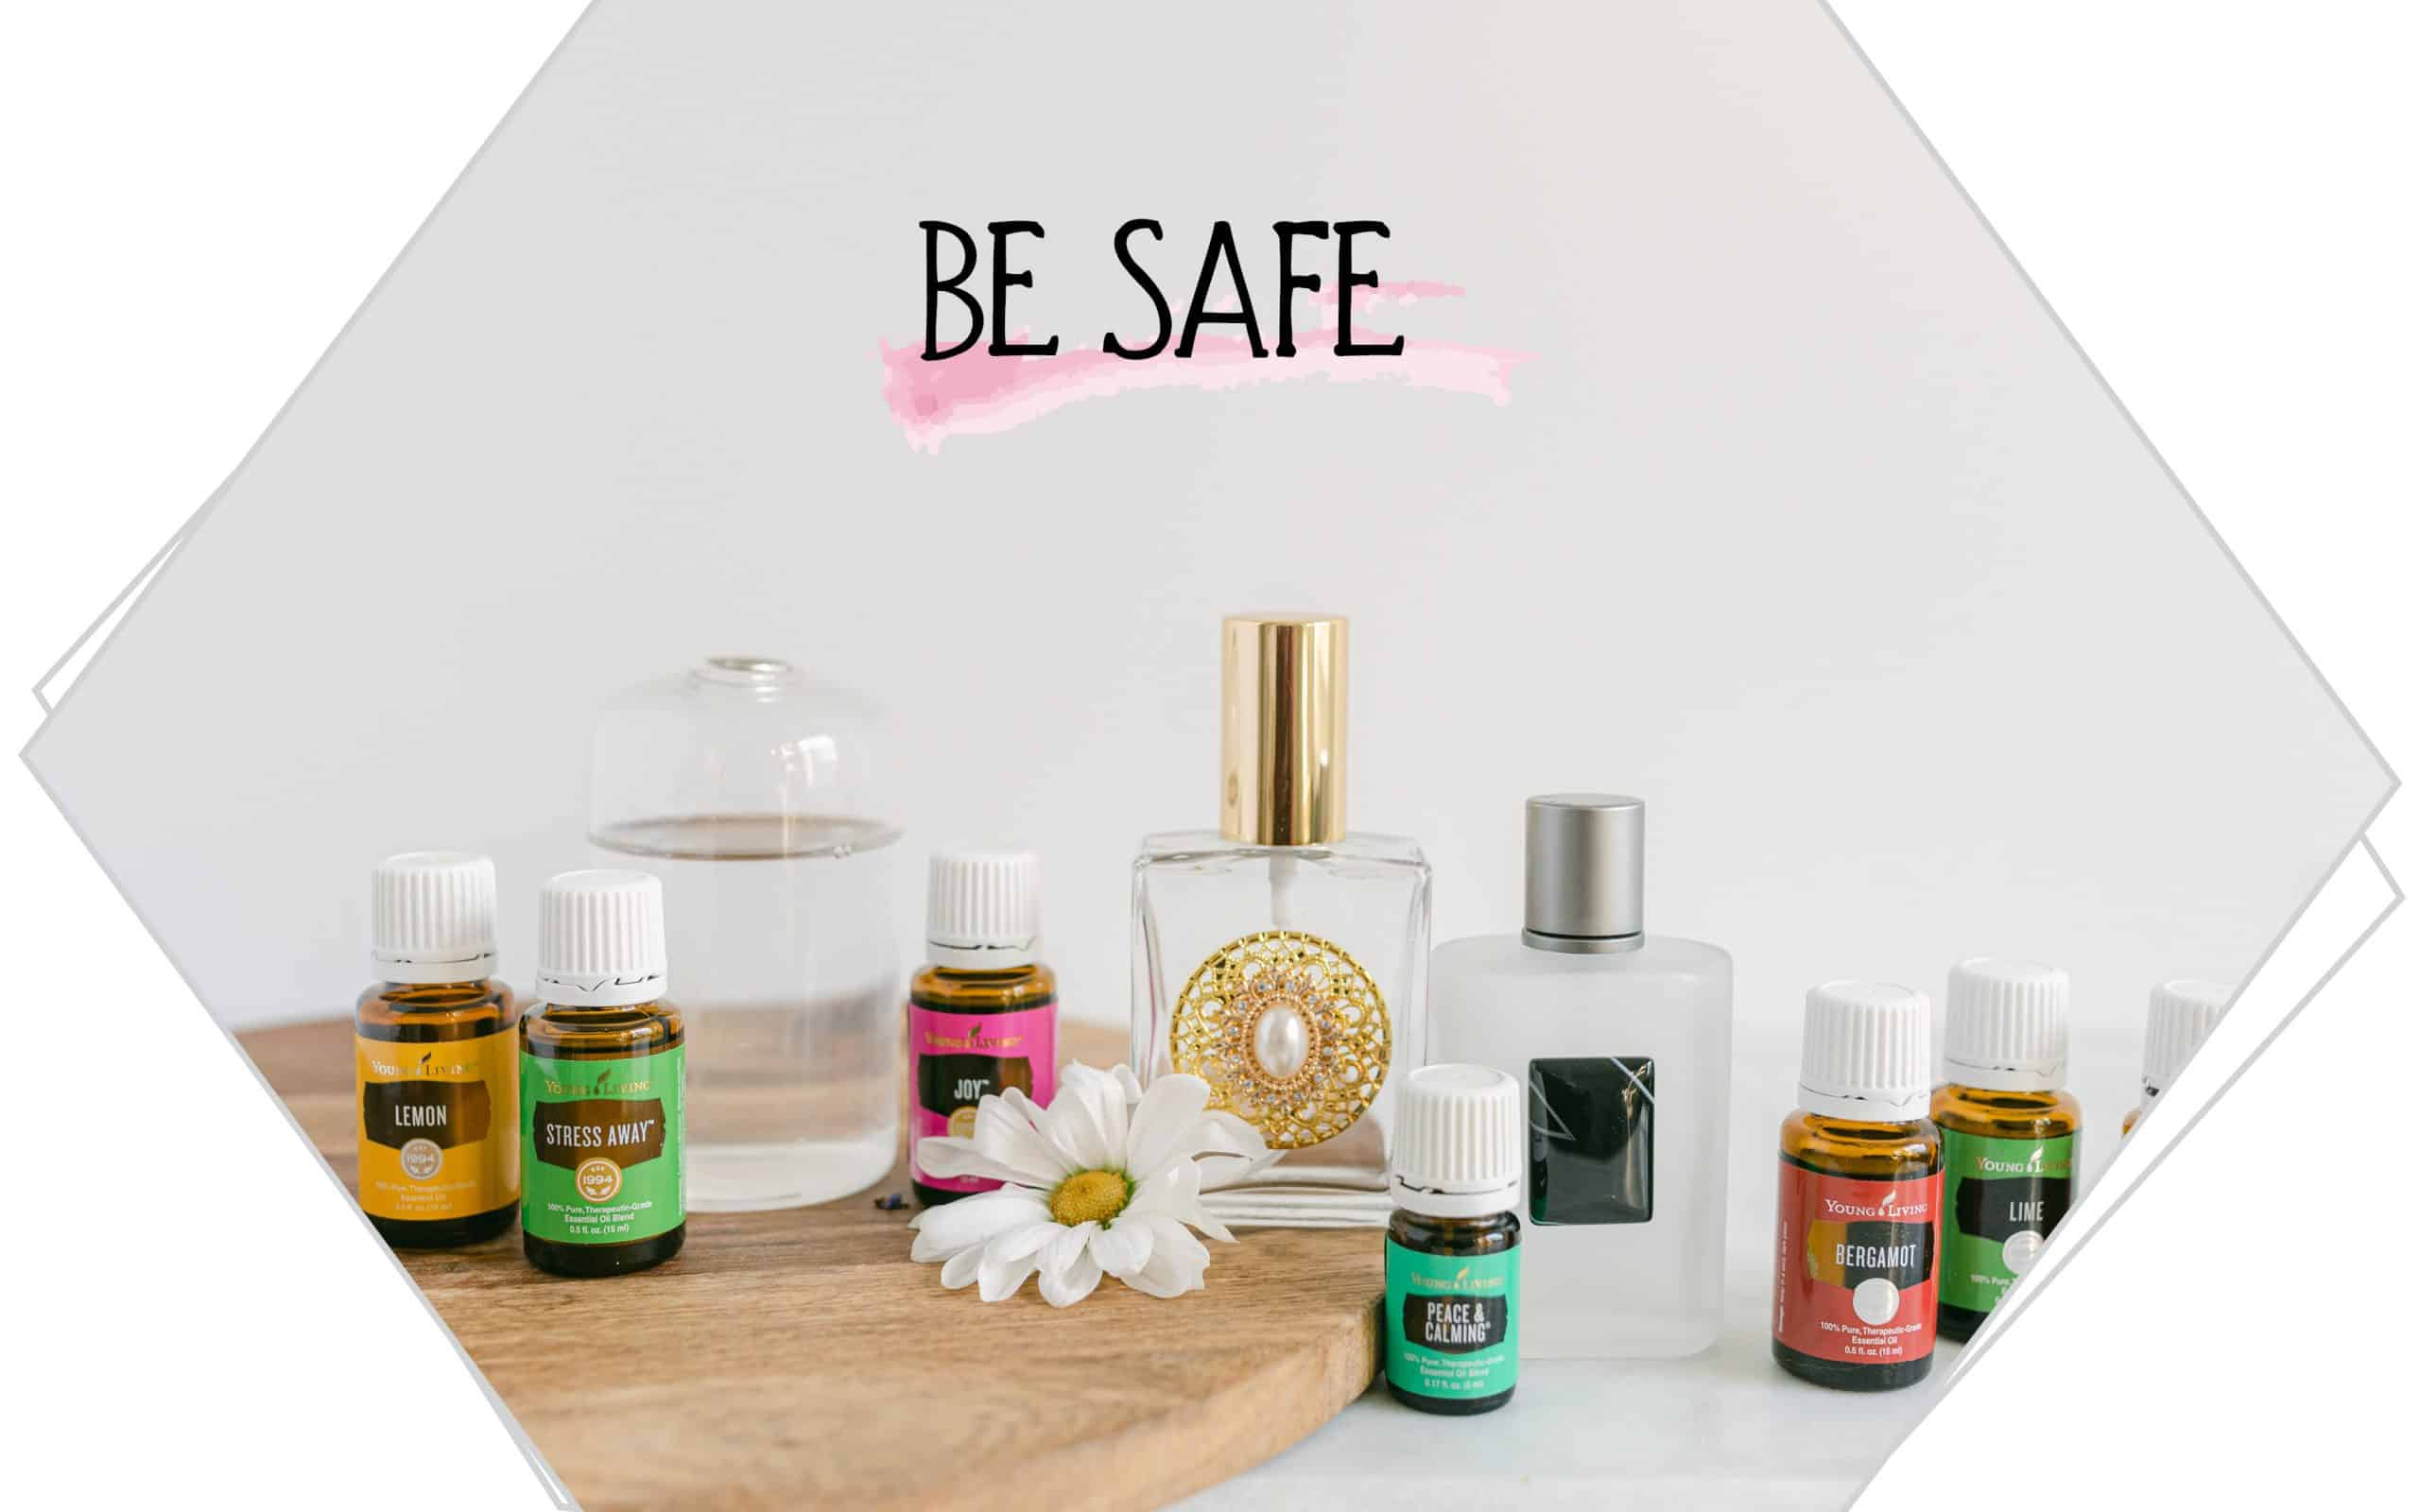 An assortment of essential oils and perfume bottles.